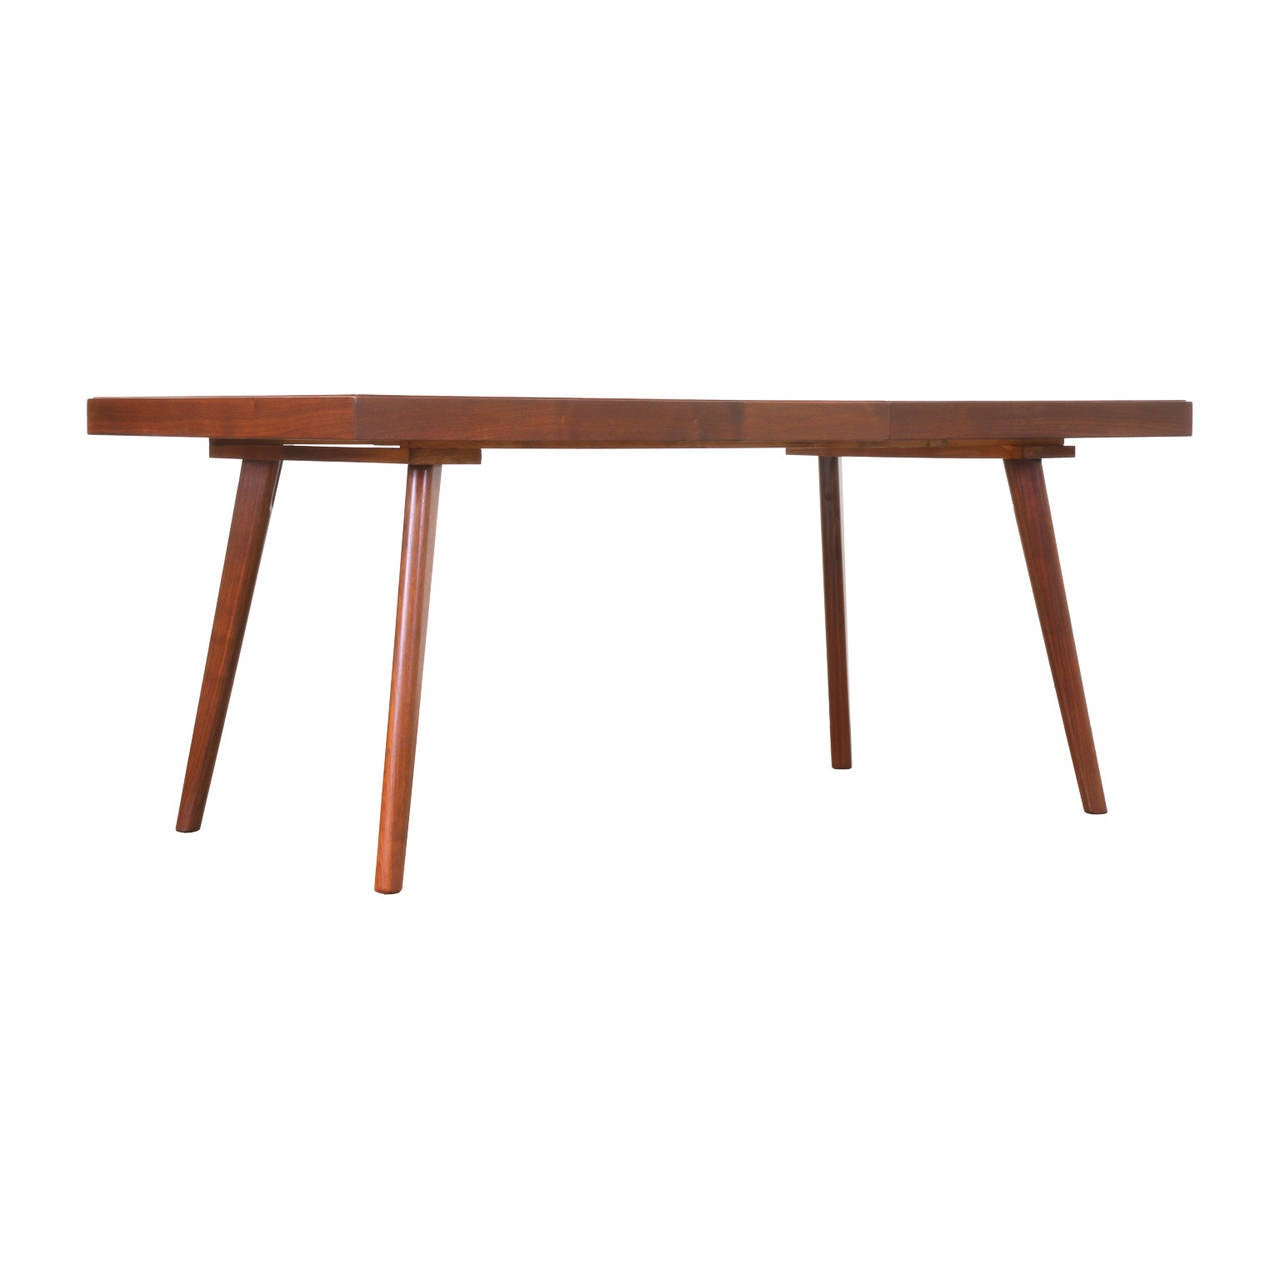 Walnut Glen Apartments: Stanley Young Walnut Dining Table For Glenn Of California